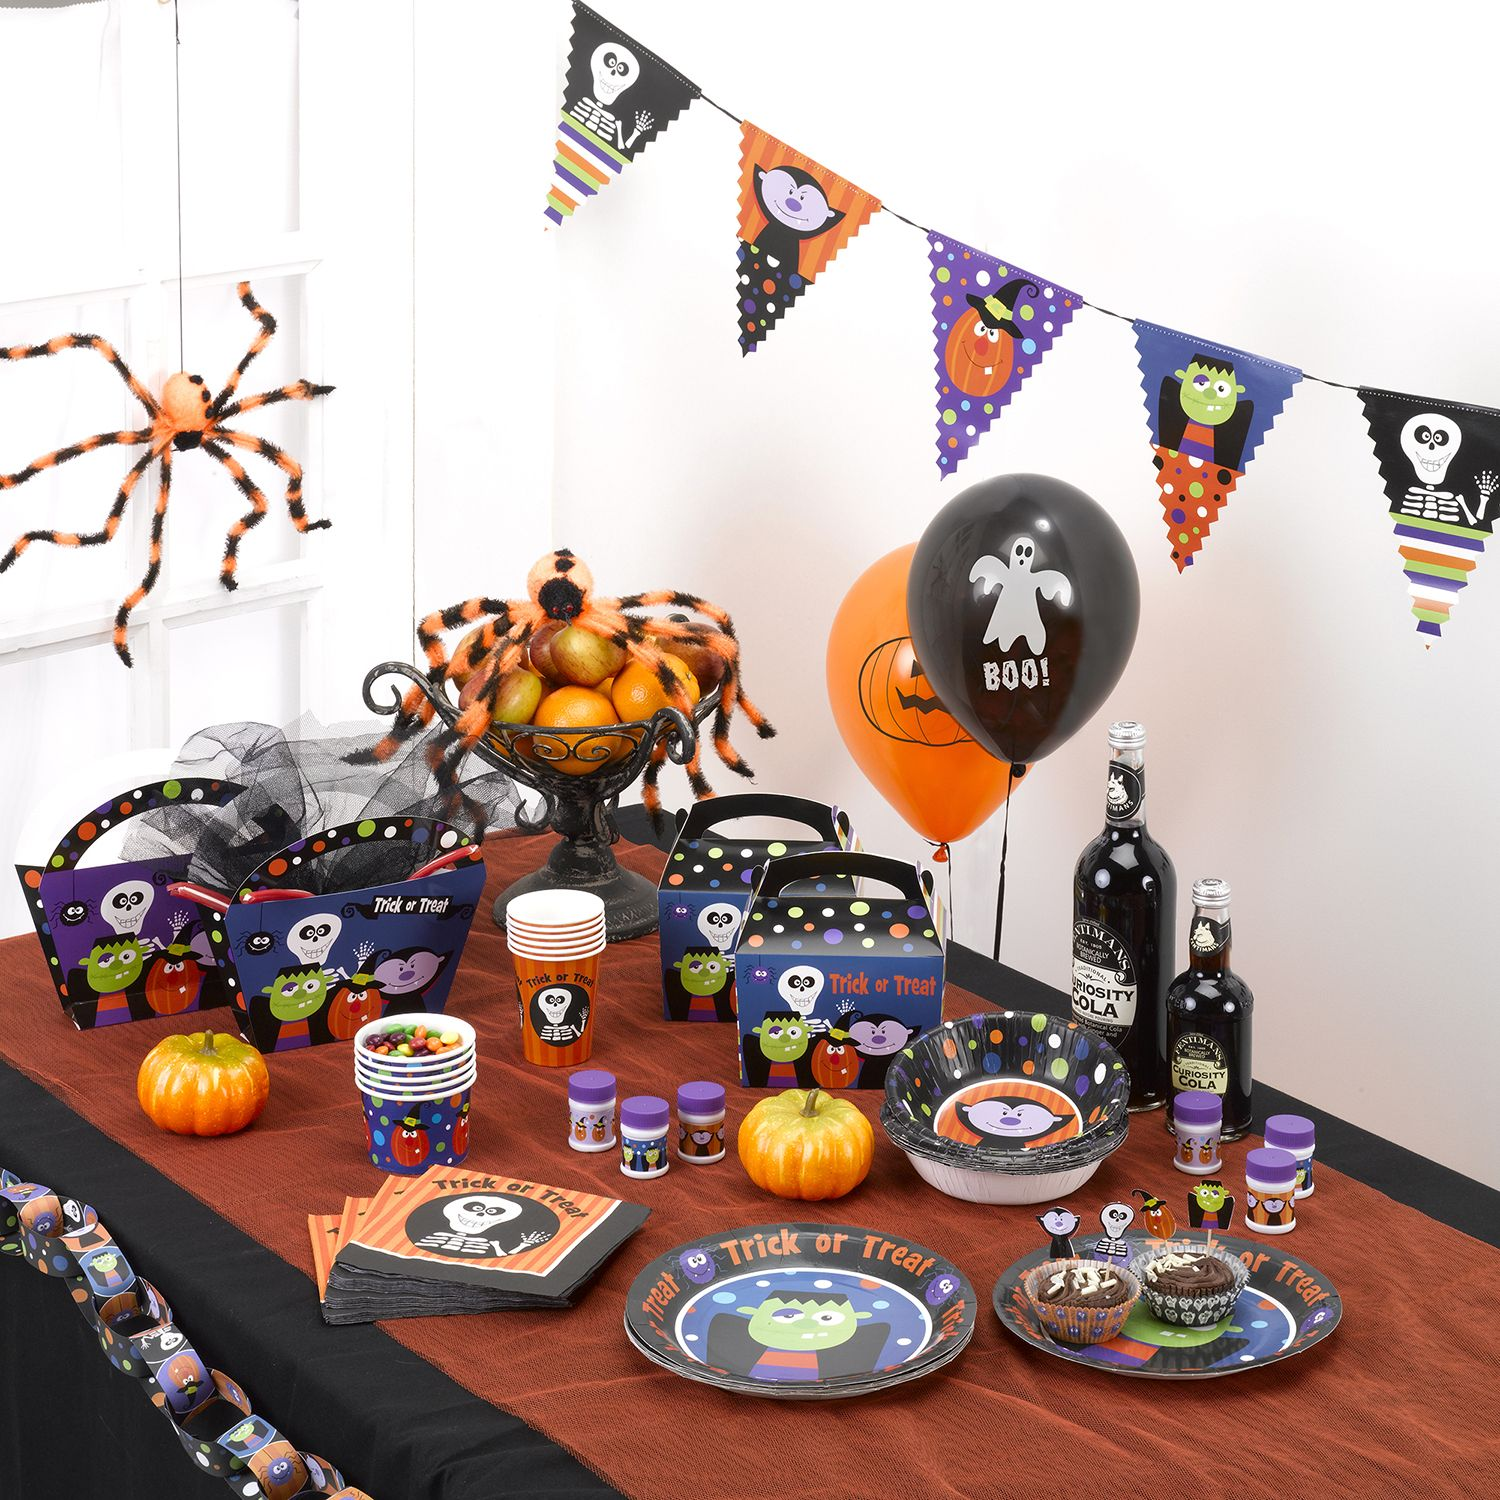 16 days until Halloween!🎃 This is our Trick or Treat range